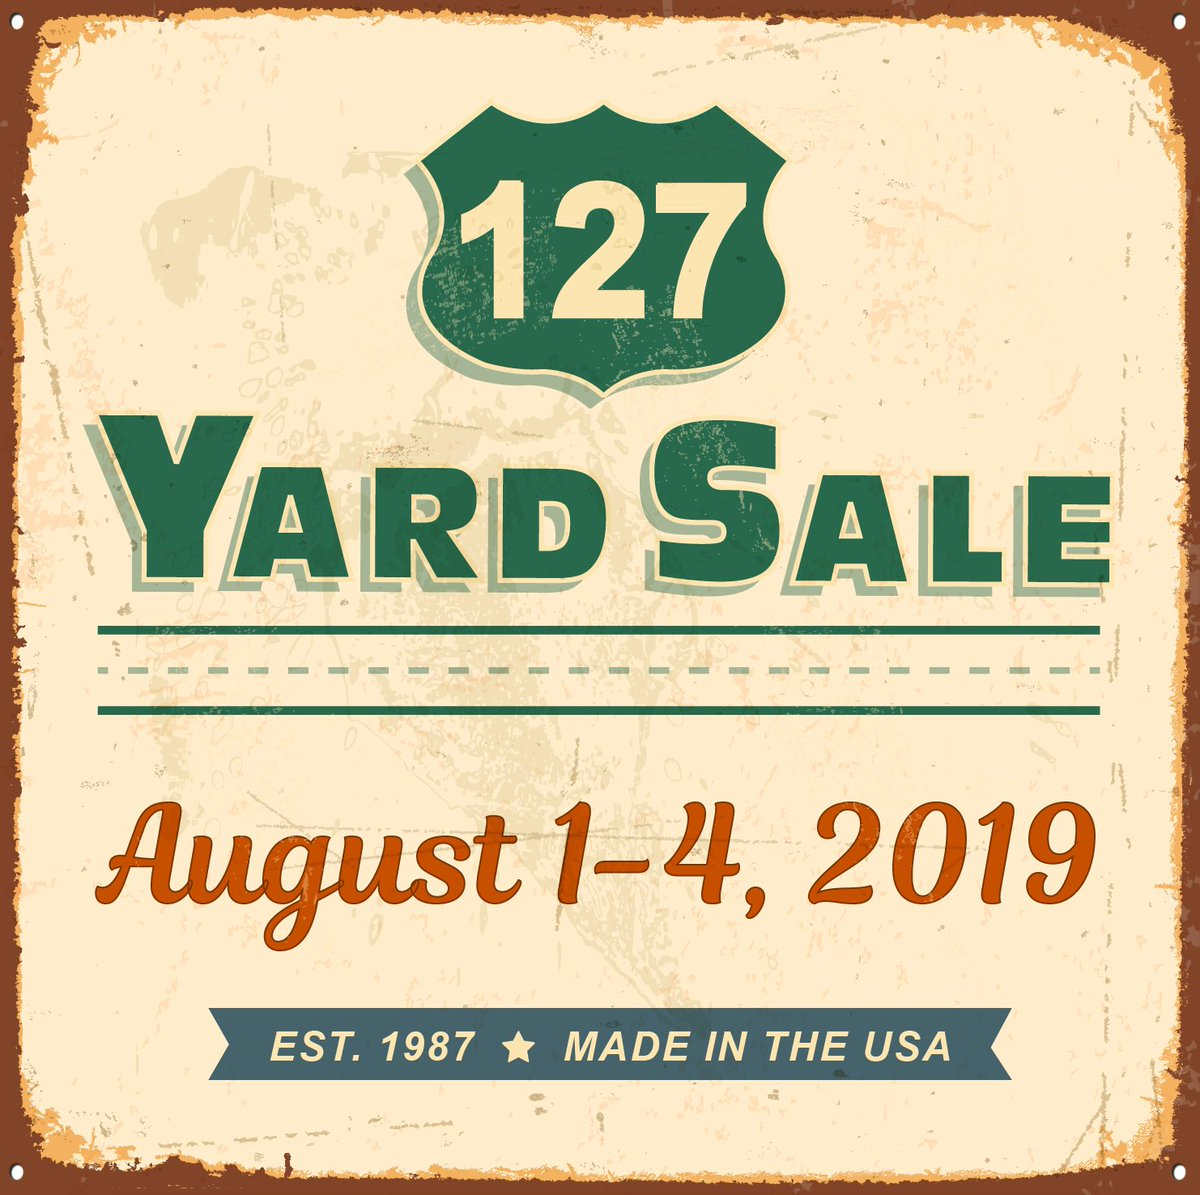 Yard Sale Yardsale Twitter - August 1